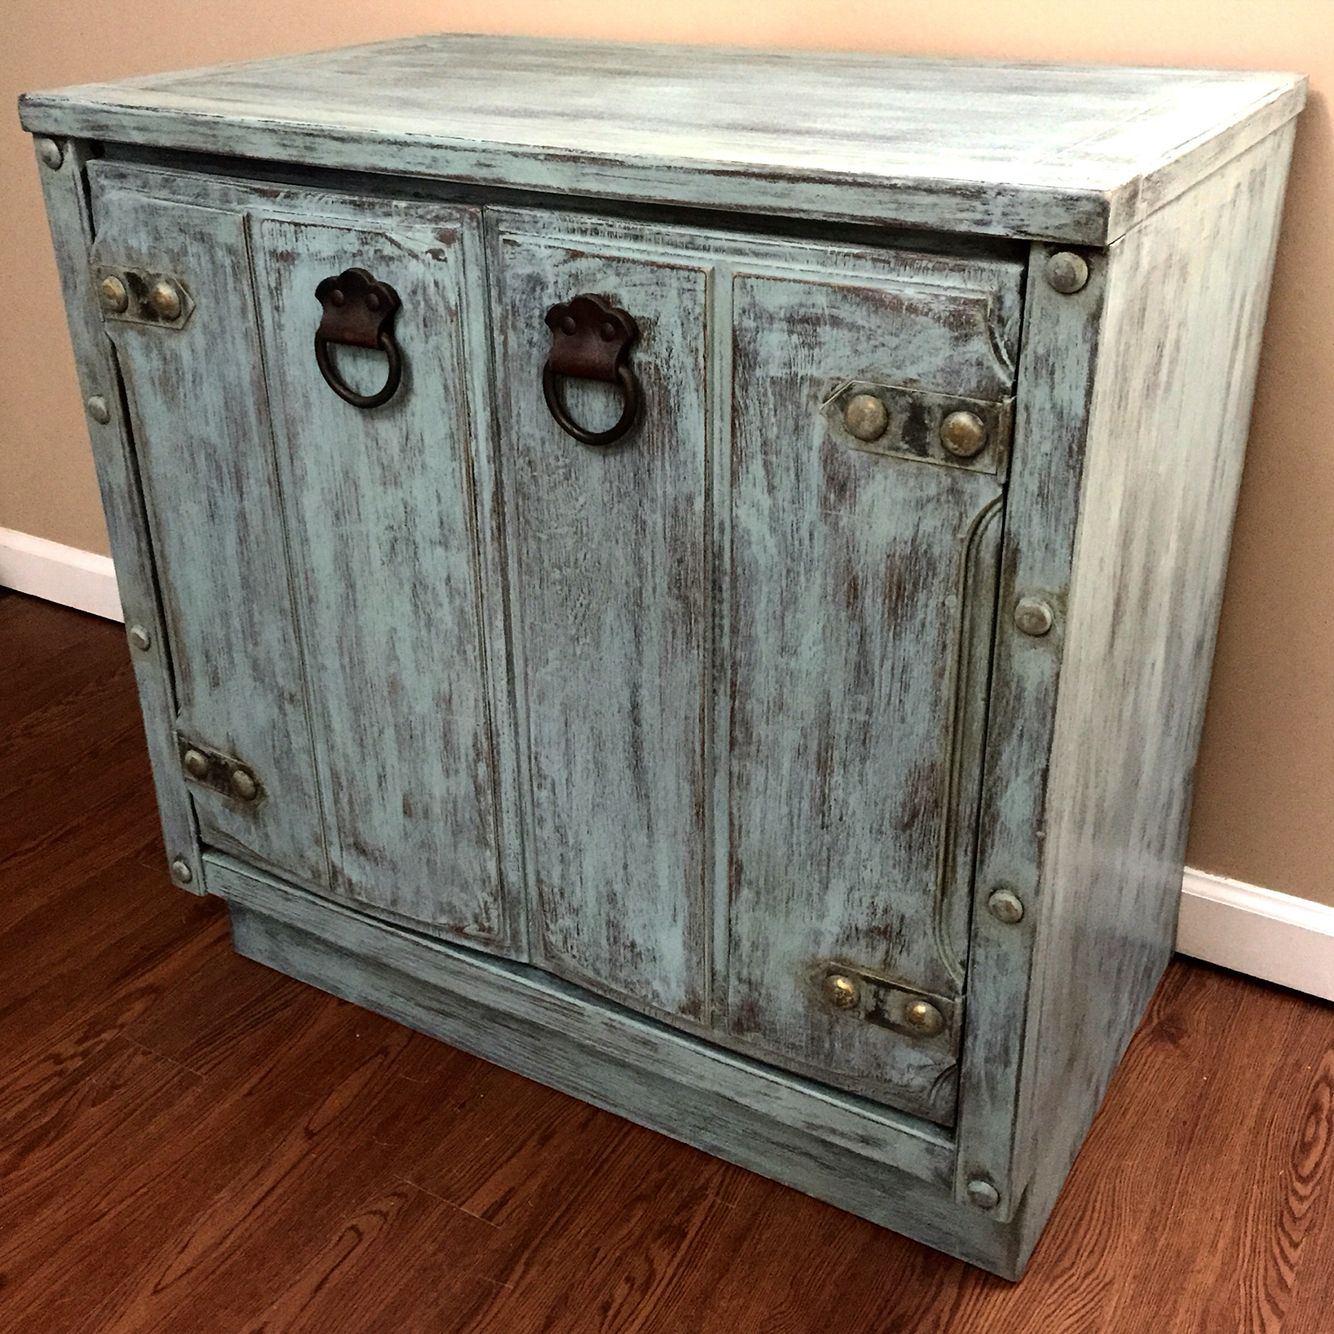 Distressed cabinet with interior shelf.  This small solid wood cabinet could be used as an end table, nightstand or tv/cabinet.  Painted in Persian Blue milk paint, waxed and distressed.